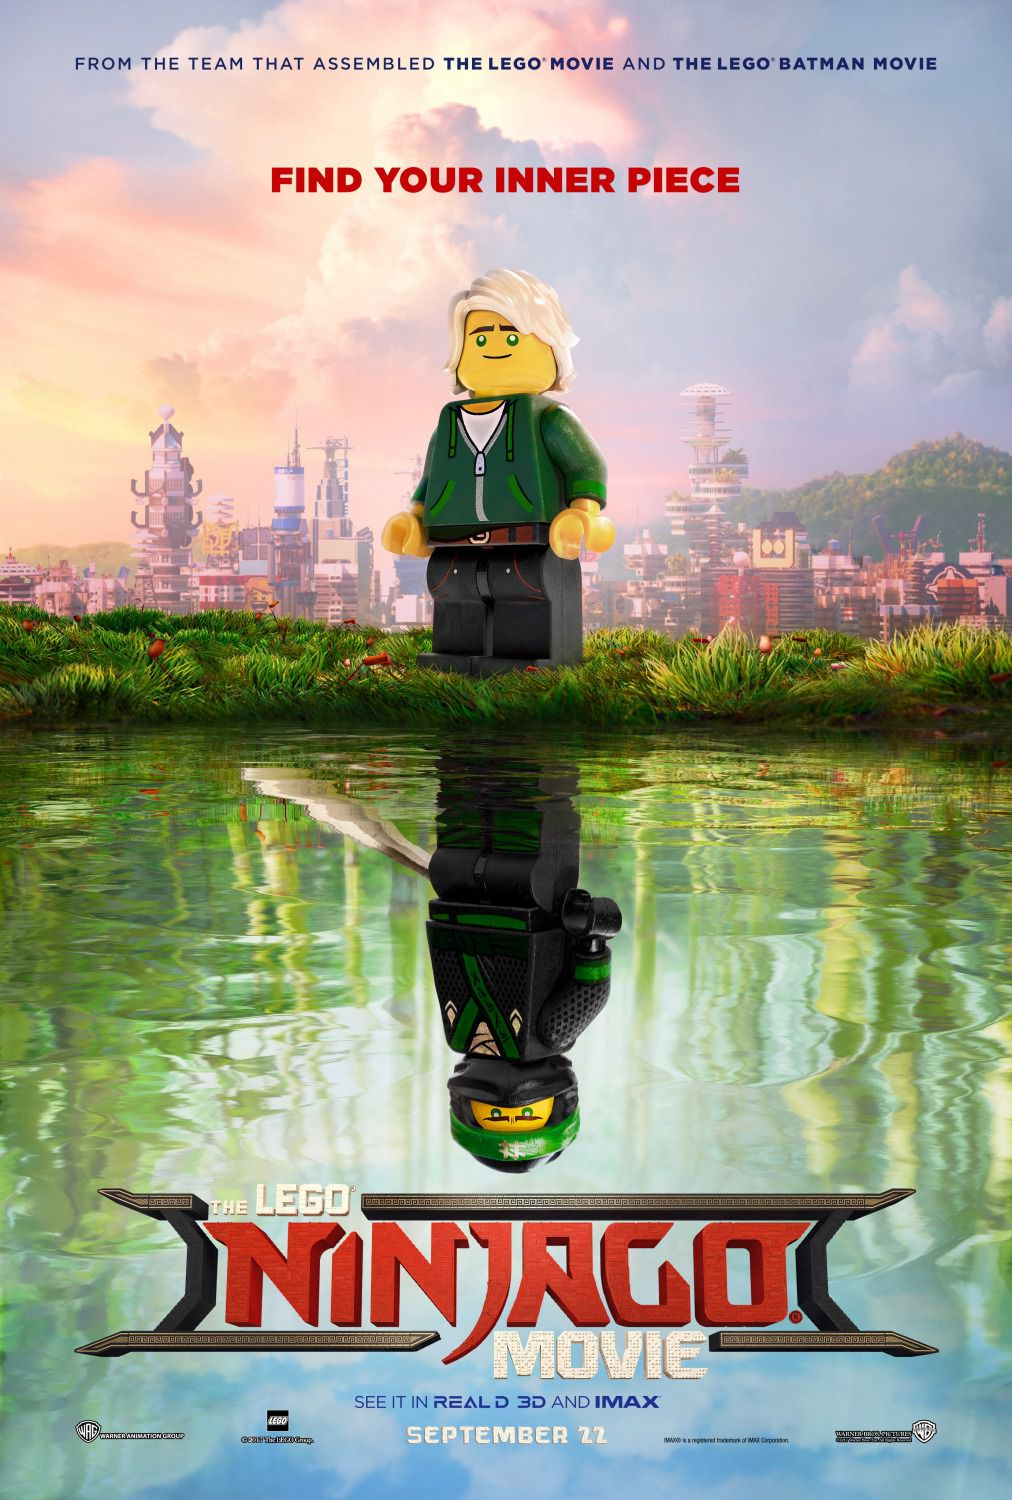 The Lego Ninjago Movie - poster - good and evil